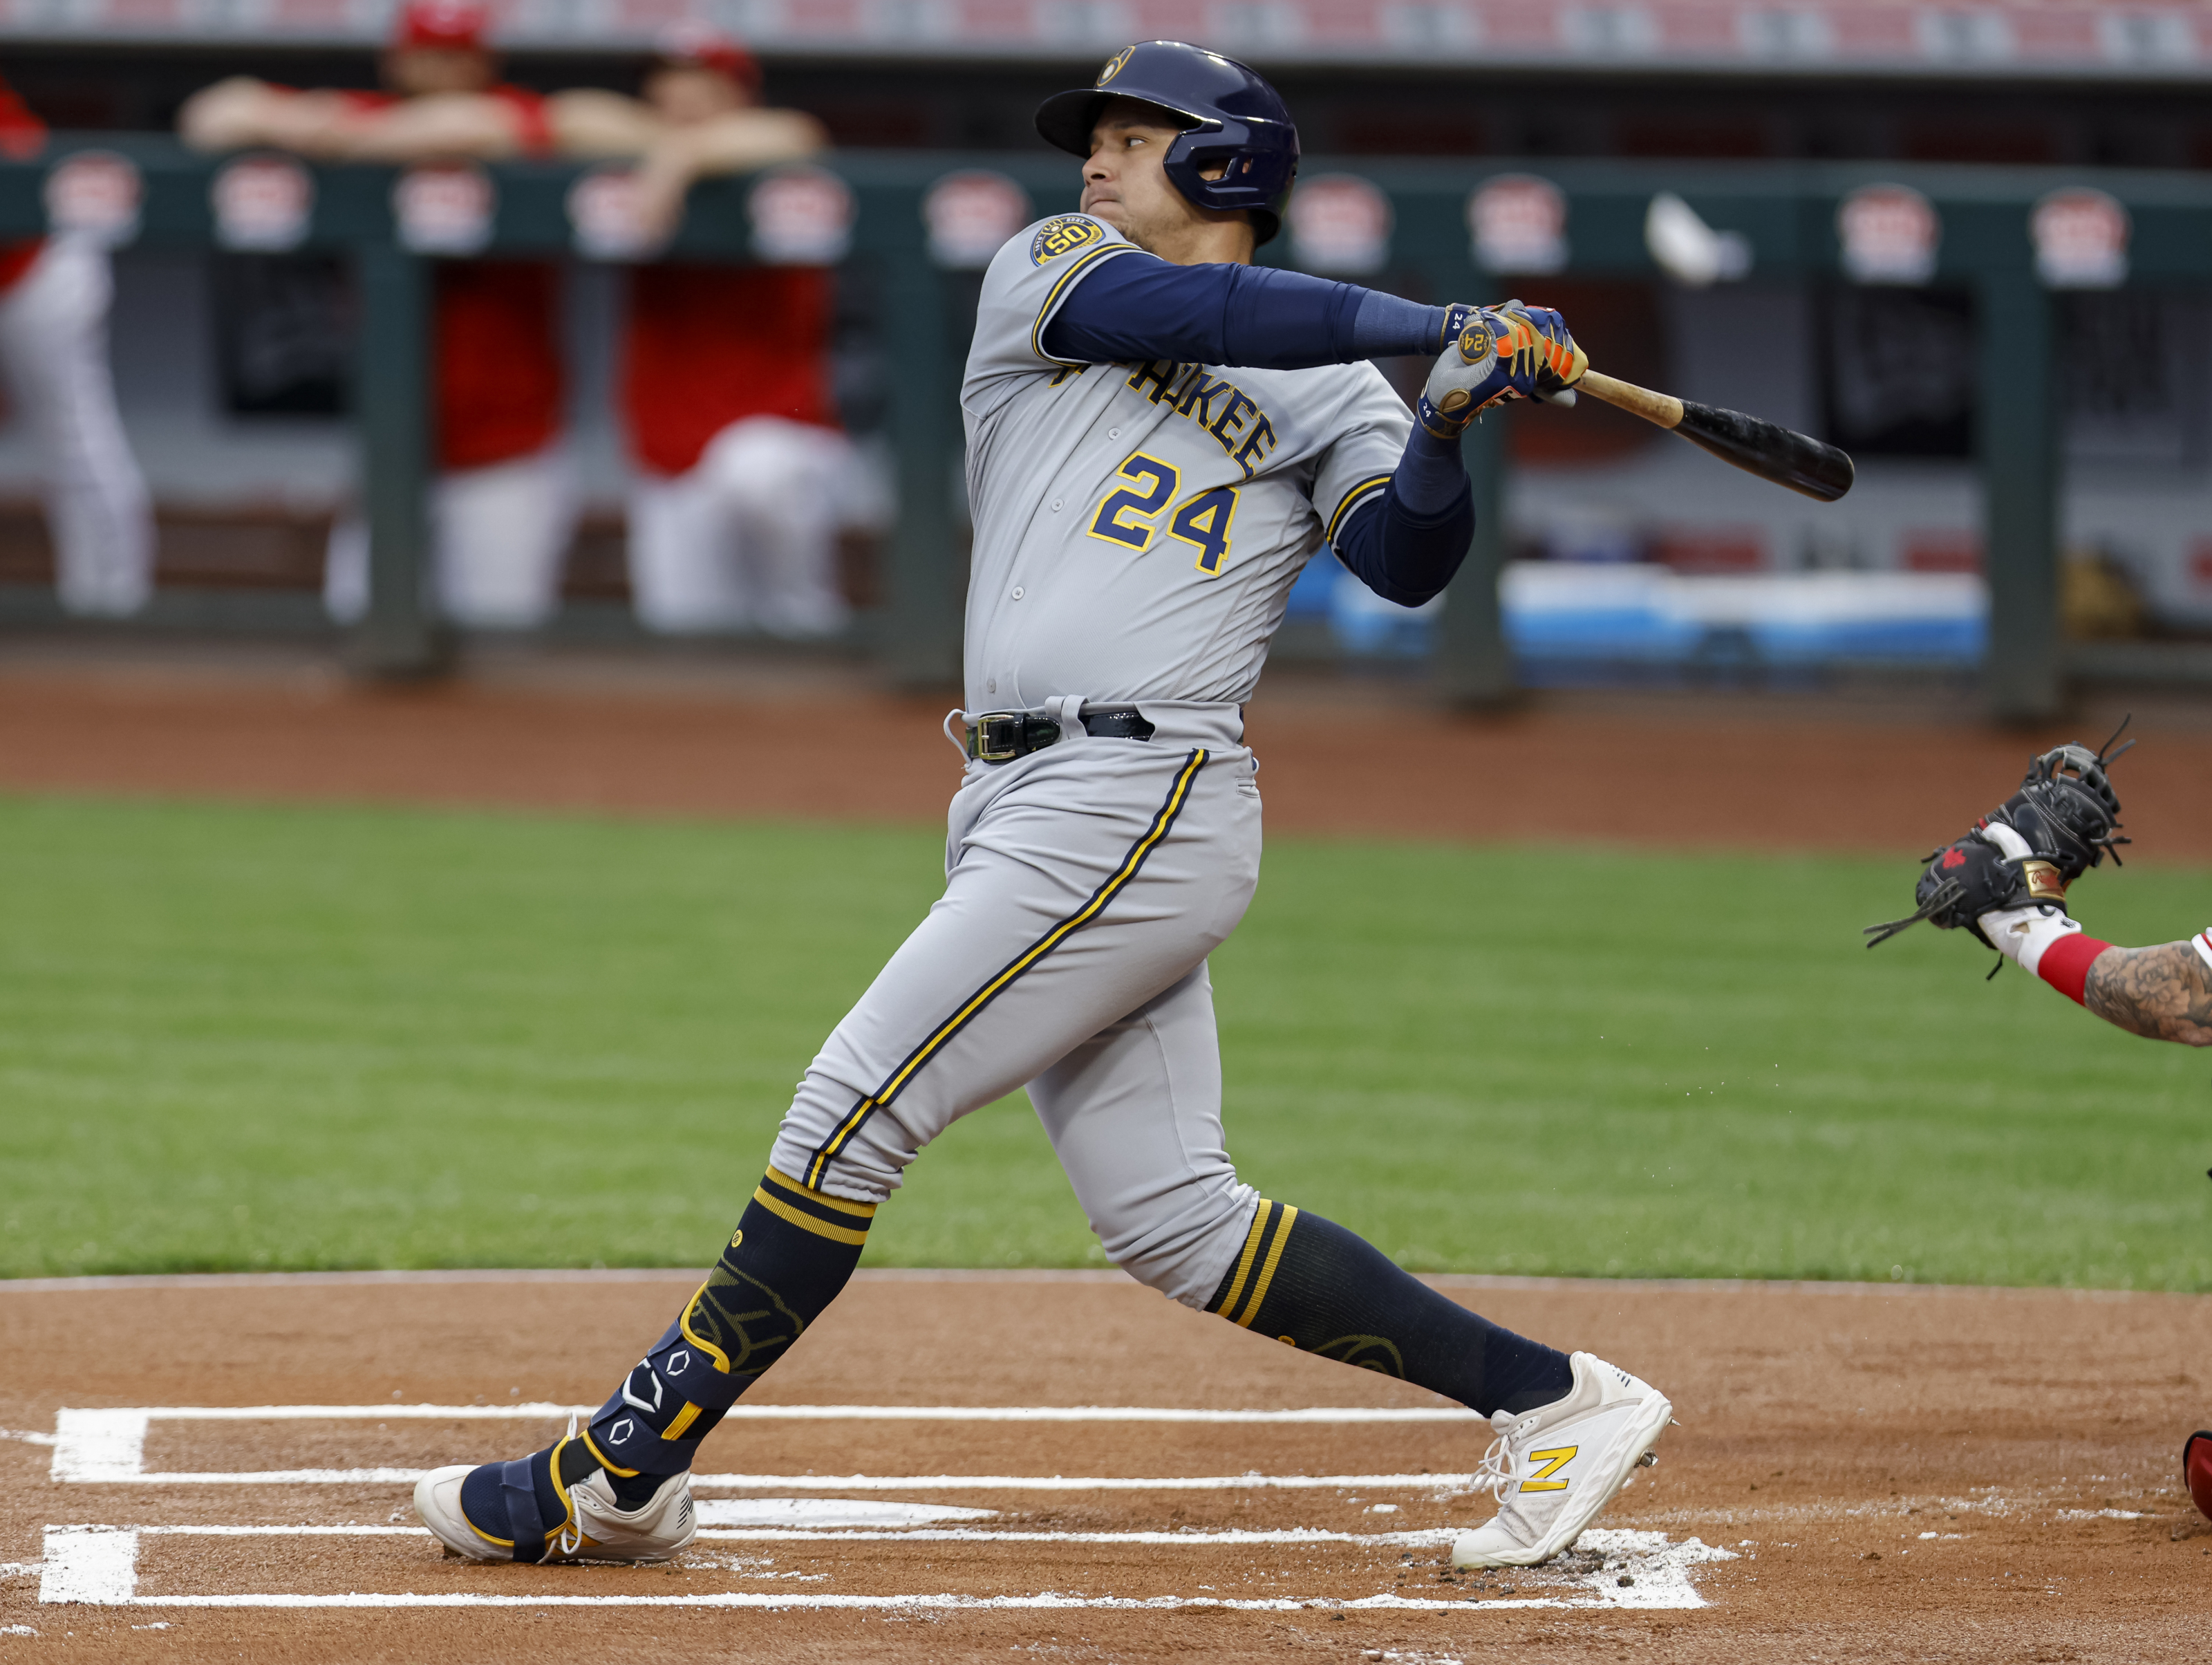 Brewers: Avisail Garcia Is The Perfect Non-Traditional Clean-Up Hitter